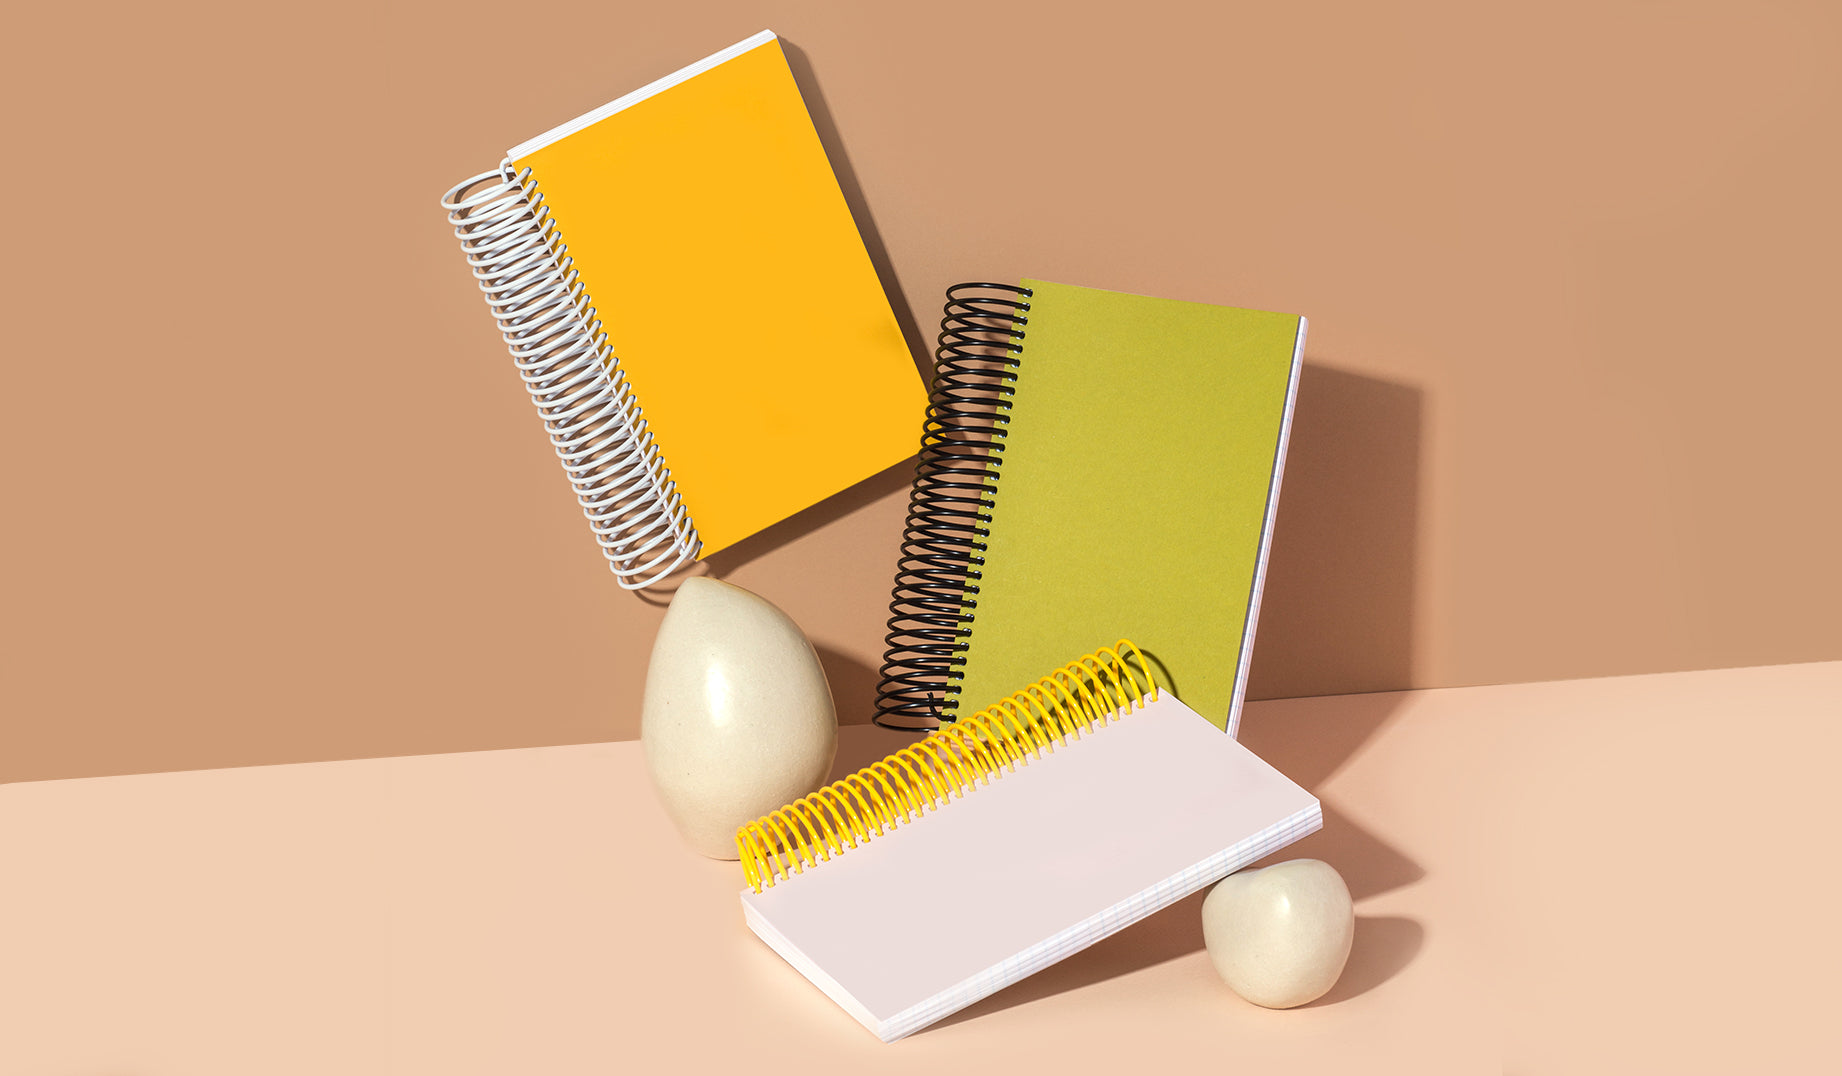 Featuring premium-grade Mohawk papers paired with a sculptural coil binding, our spiral notebooks are as functional as they are beautifully designed.